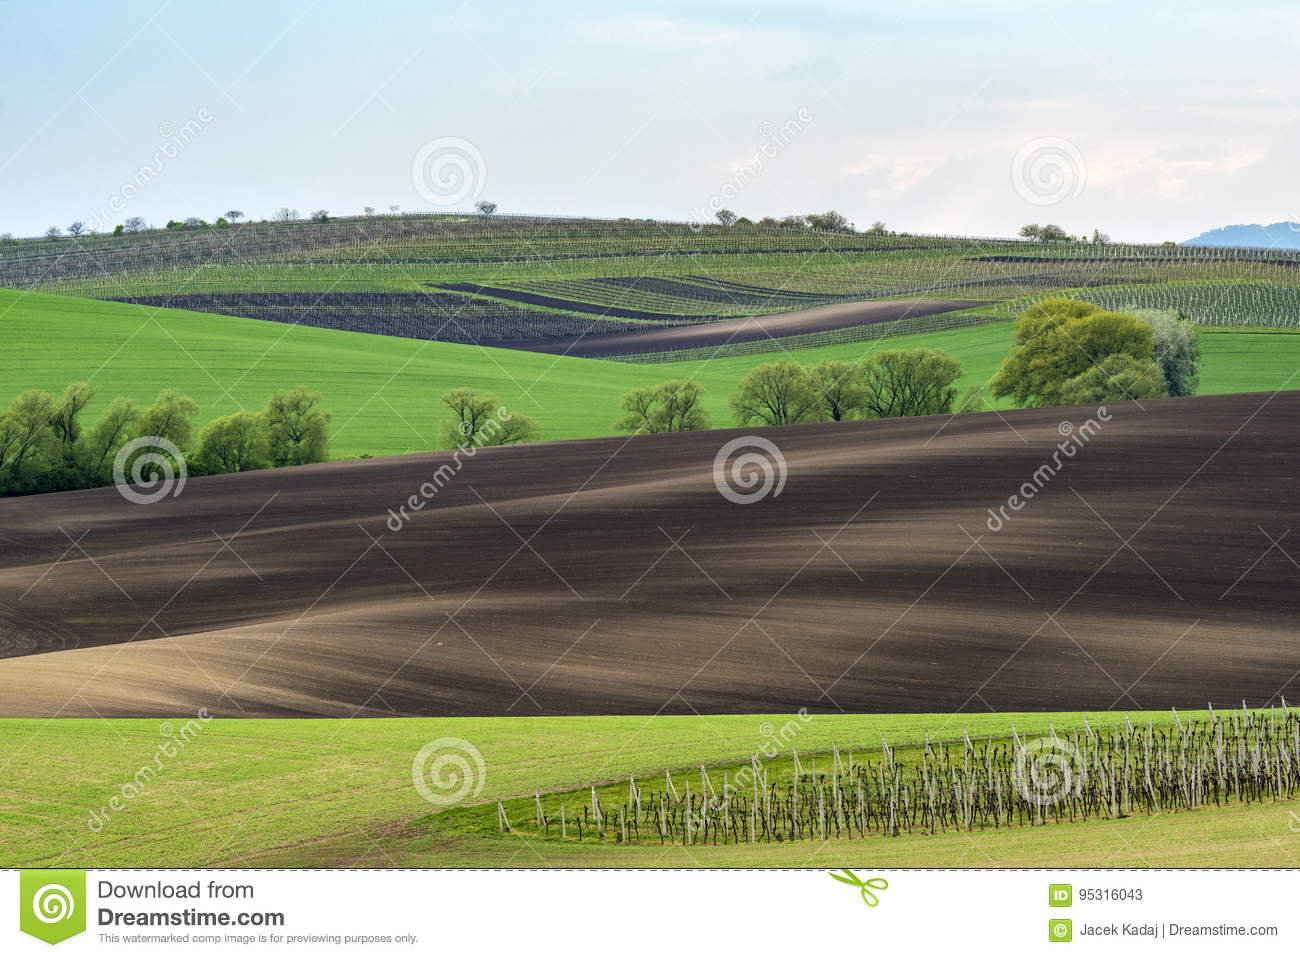 Wavy vineyard fields in the evening on South Moravia